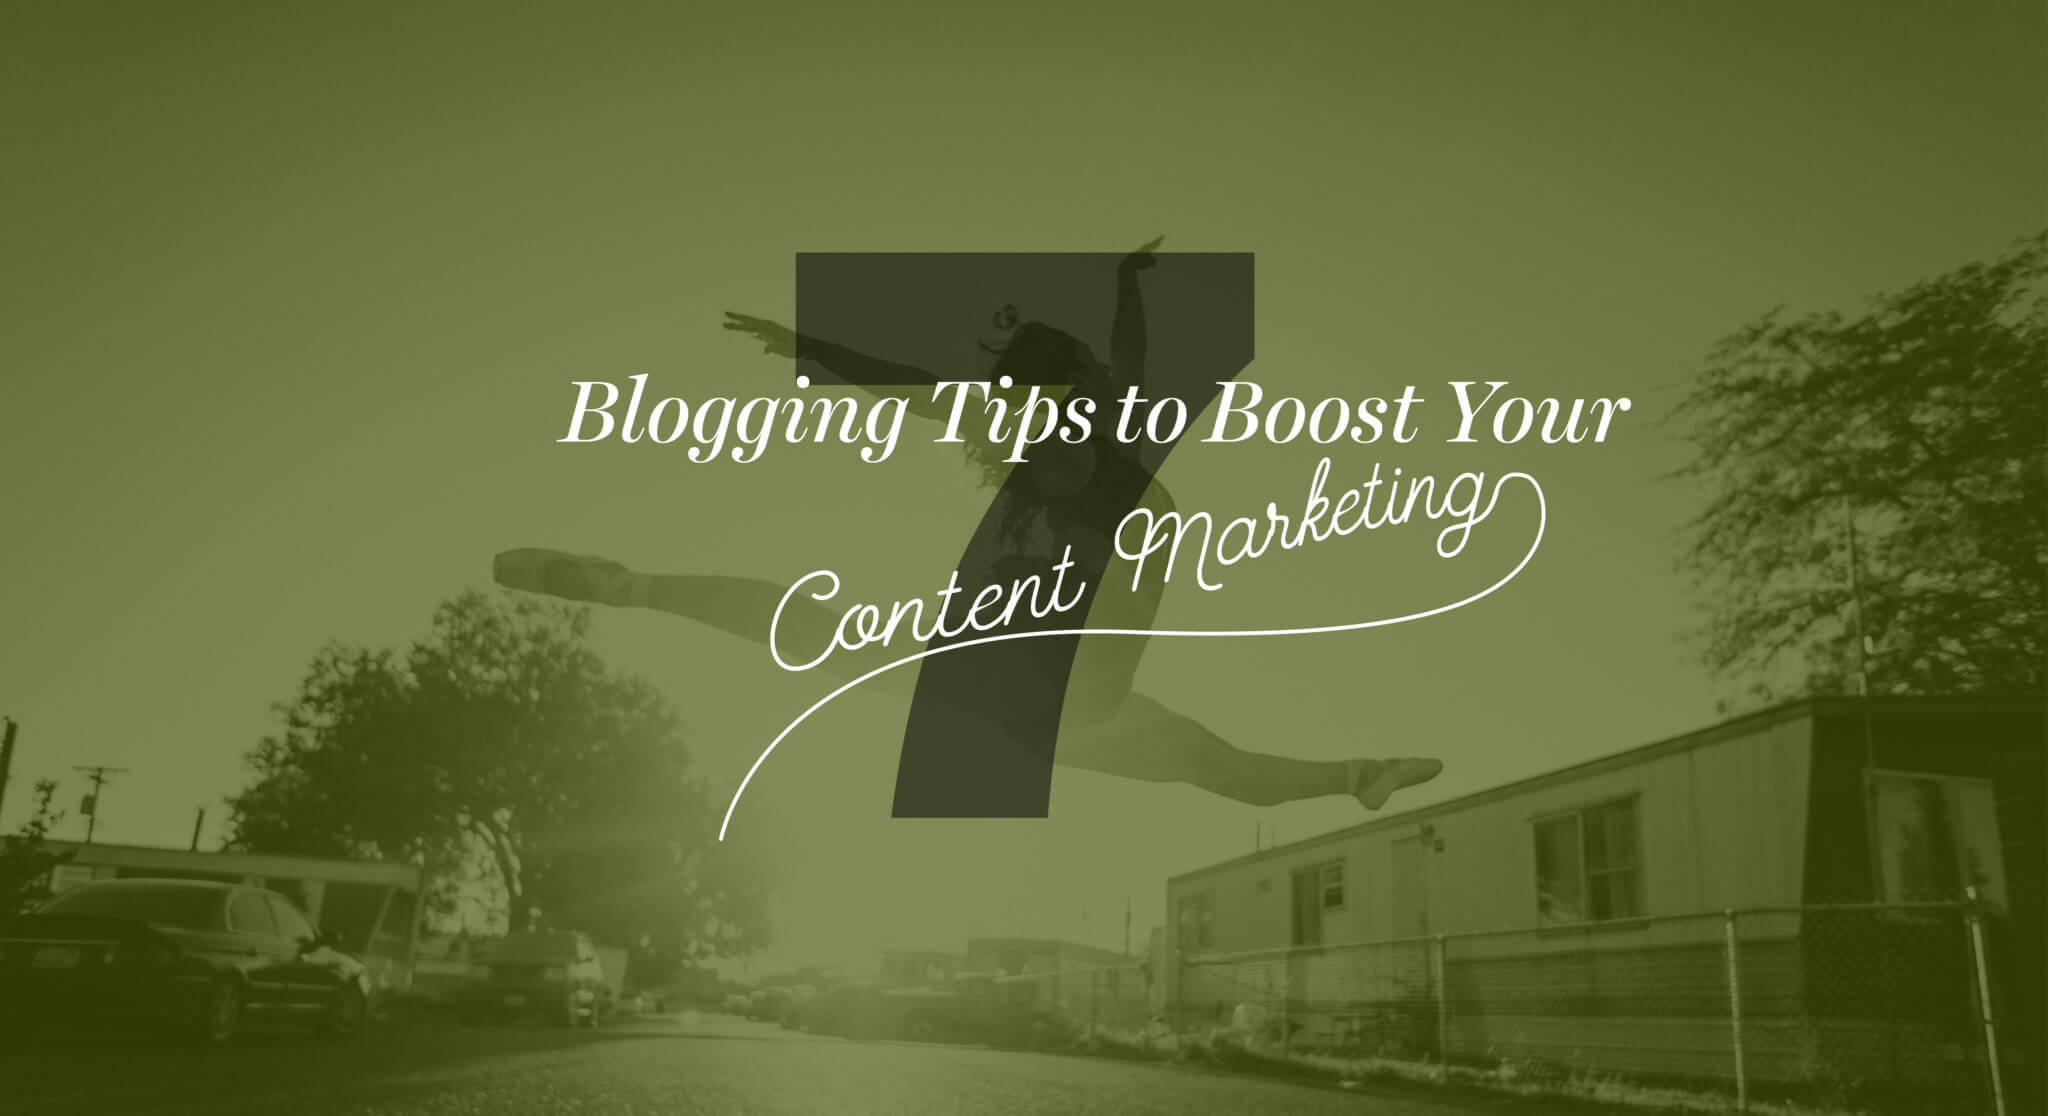 7 Blogging Tips to Boost Your Content Marketing in 2018